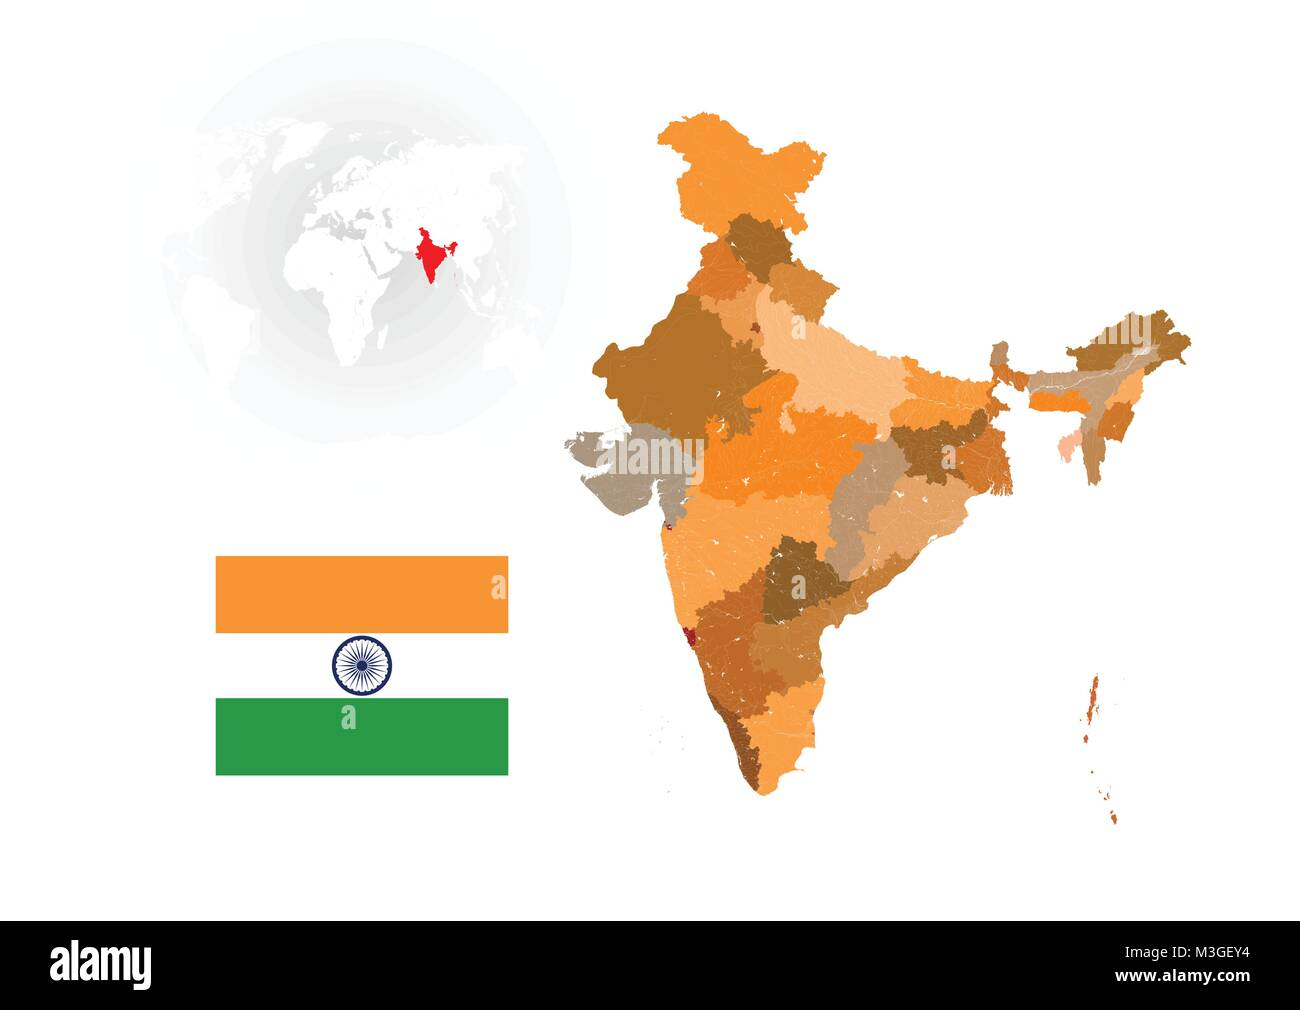 Map Of India With Rivers And Lakes National Flag Of India World